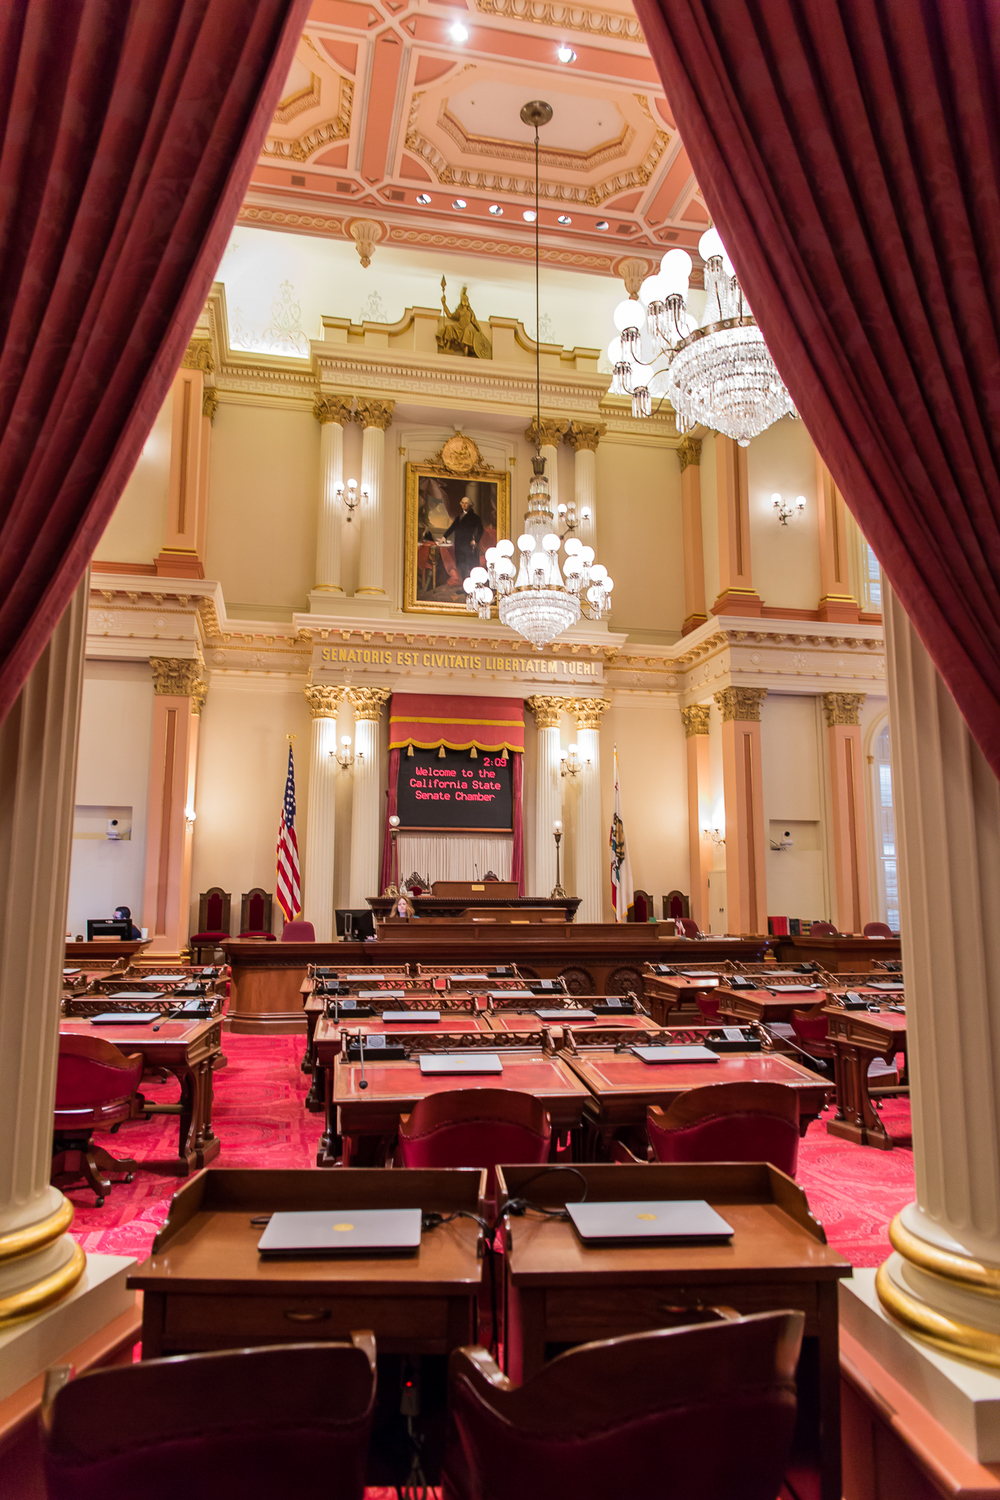 California State Senate - Red represents nobility